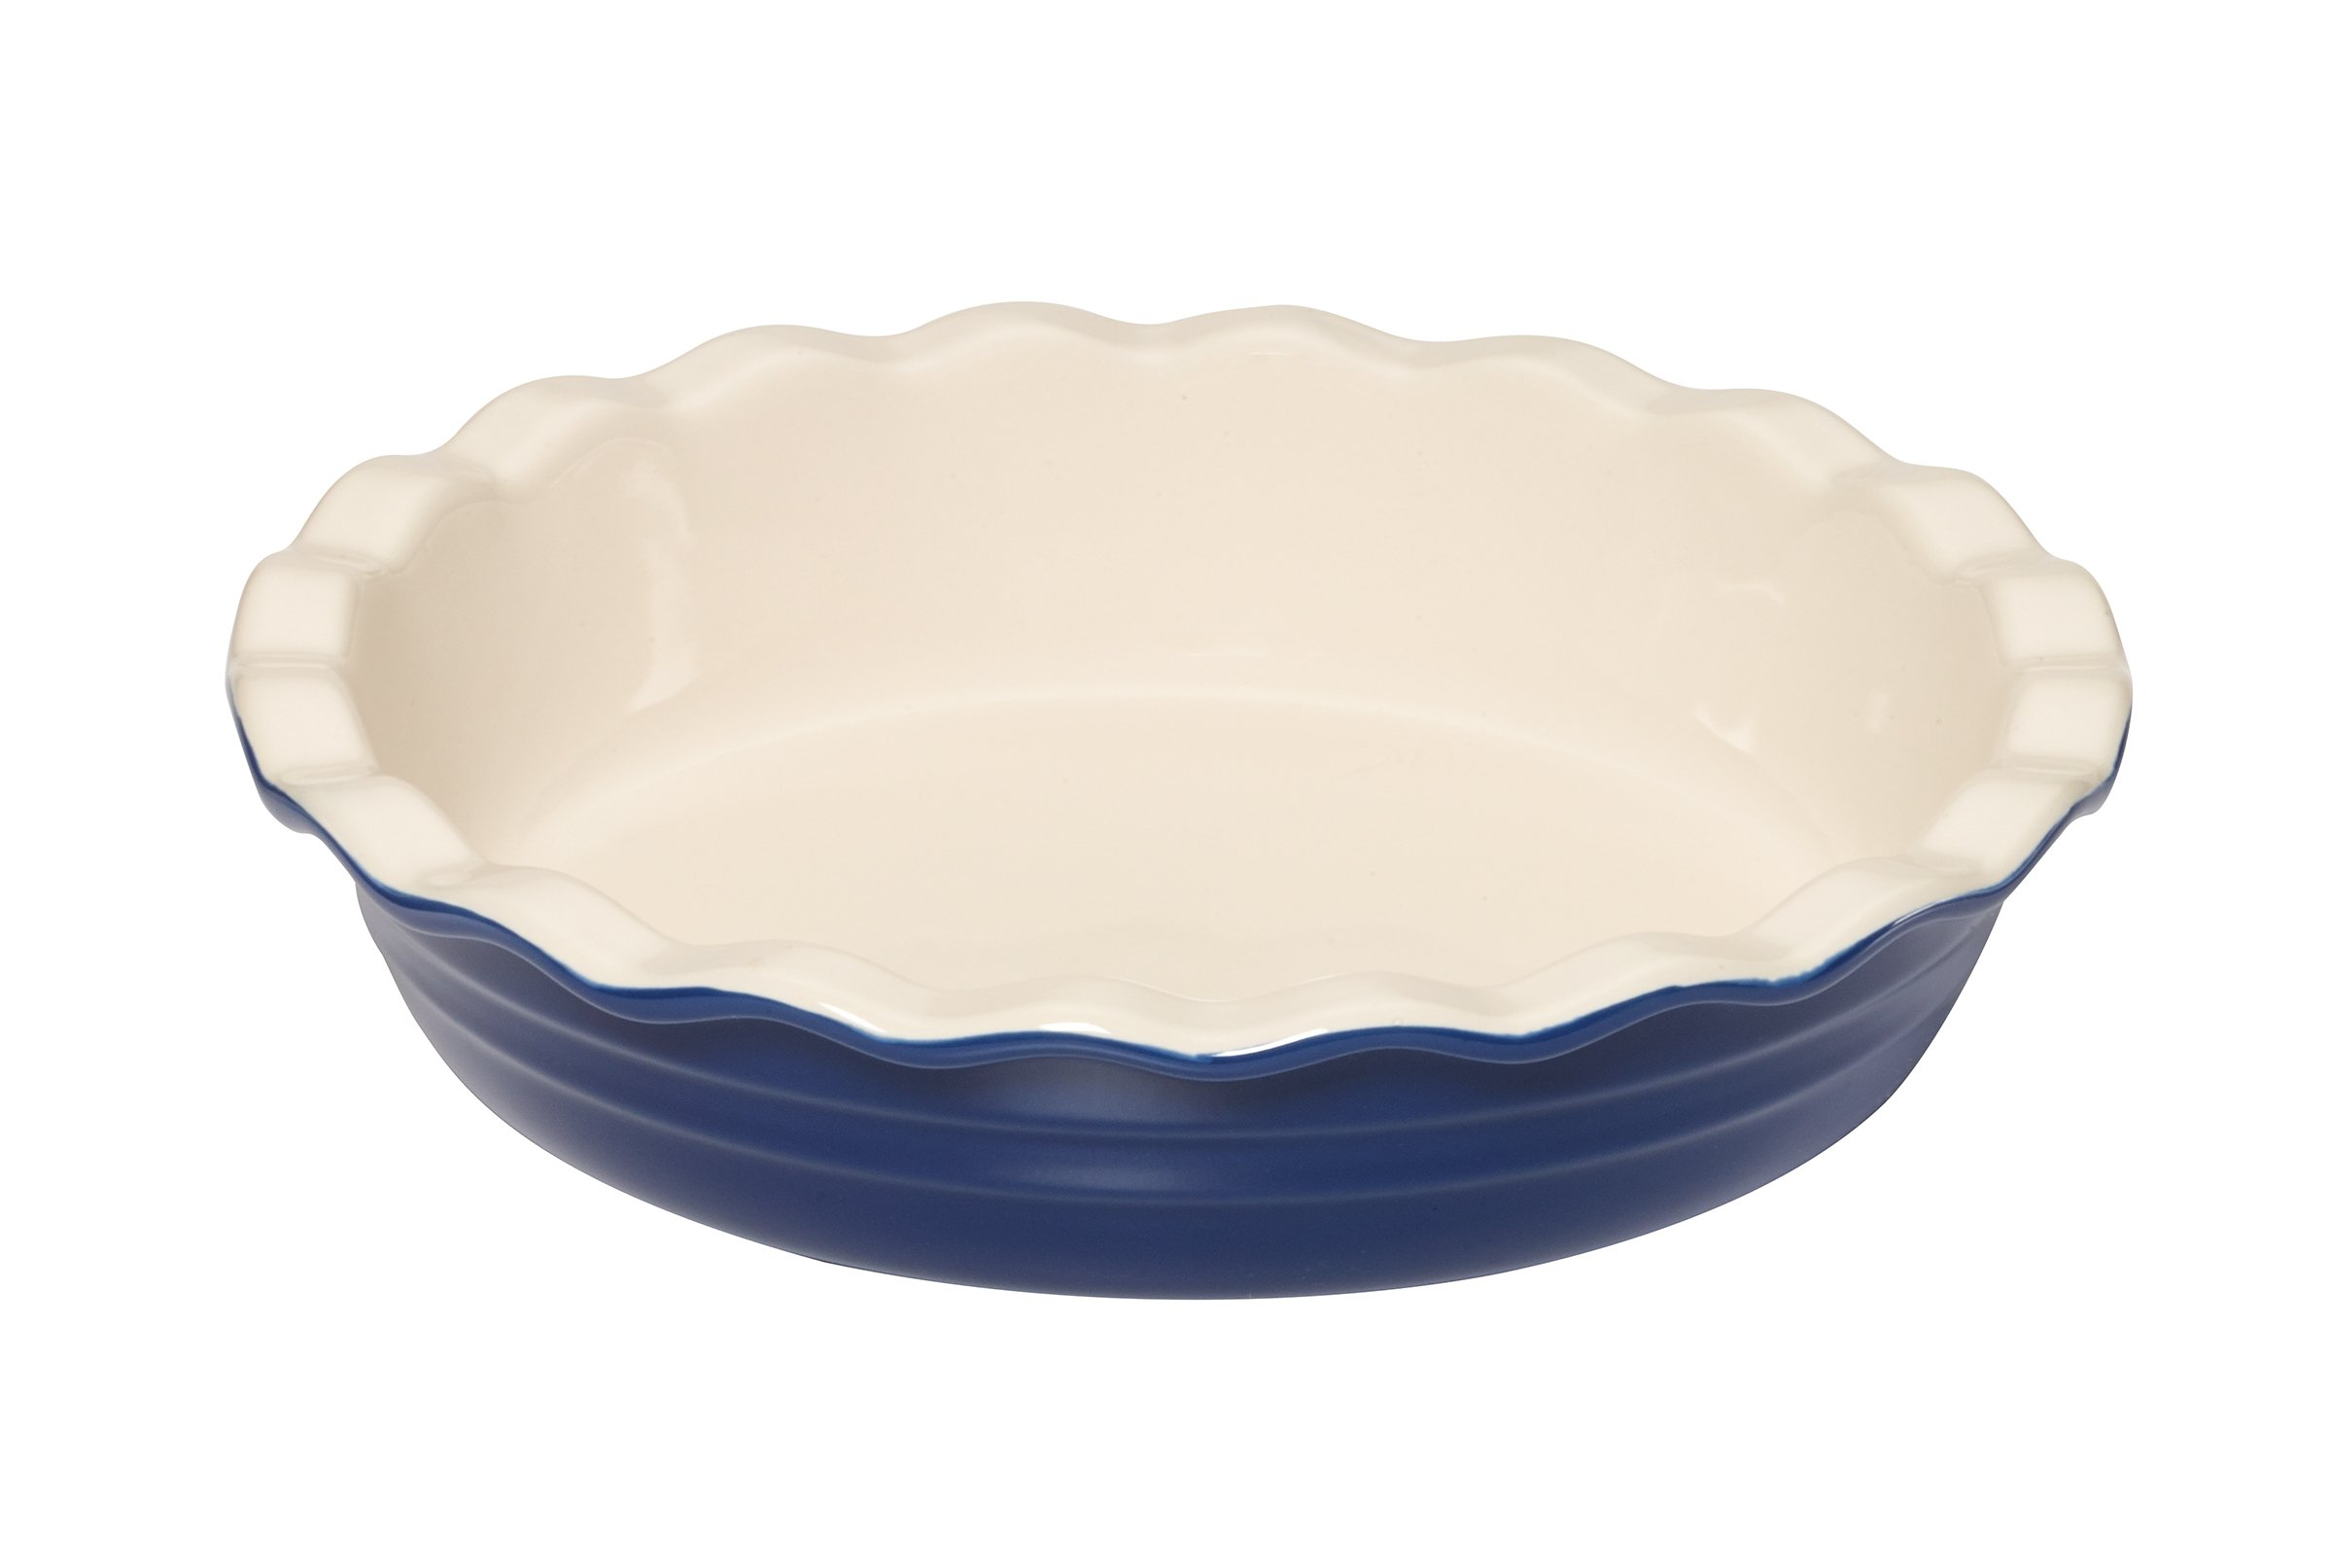 Baker's Advantage Ceramic Deep Pie Dish, 9-1/2-Inch, Blue by Baker's Advantage